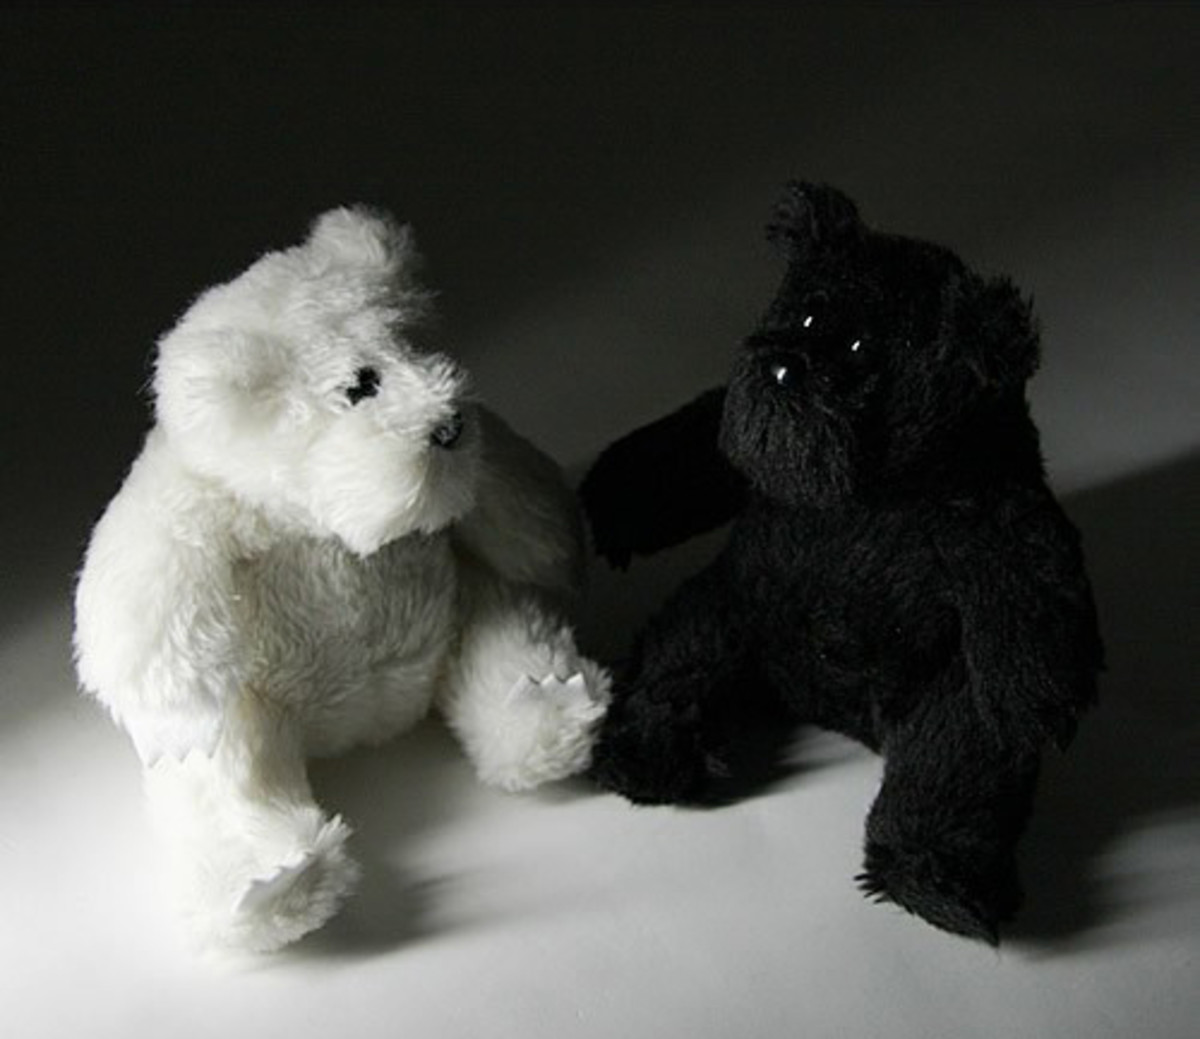 bounty-hunter-fragment-design-plush-teddy-bear-01